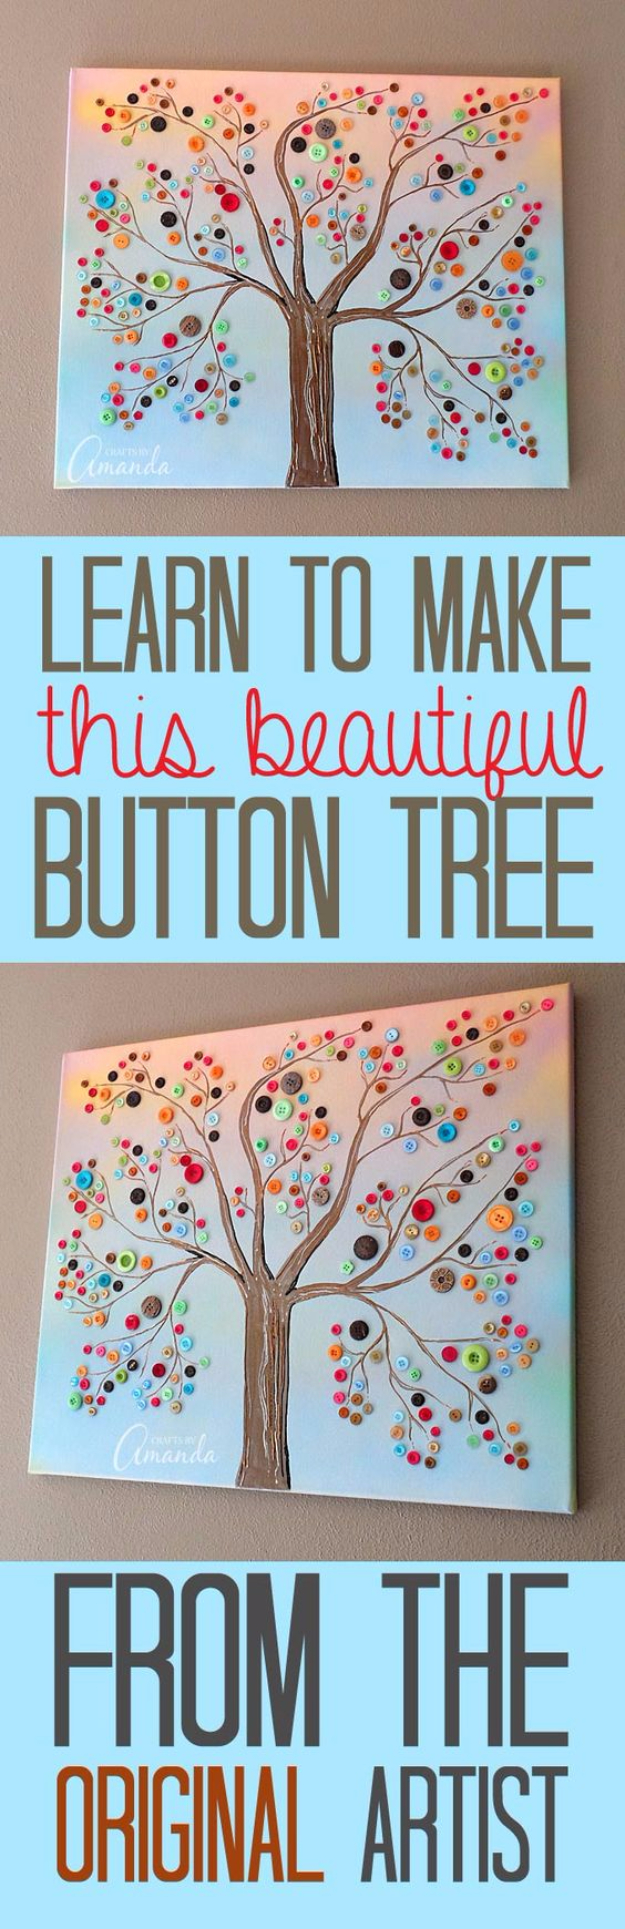 DIY Projects and Crafts Made With Buttons - Vibrant Button Tree On Canvas - Easy and Quick Projects You Can Make With Buttons - Cool and Creative Crafts, Sewing Ideas and Homemade Gifts for Women, Teens, Kids and Friends - Home Decor, Fashion and Cheap, Inexpensive Fun Things to Make on A Budget